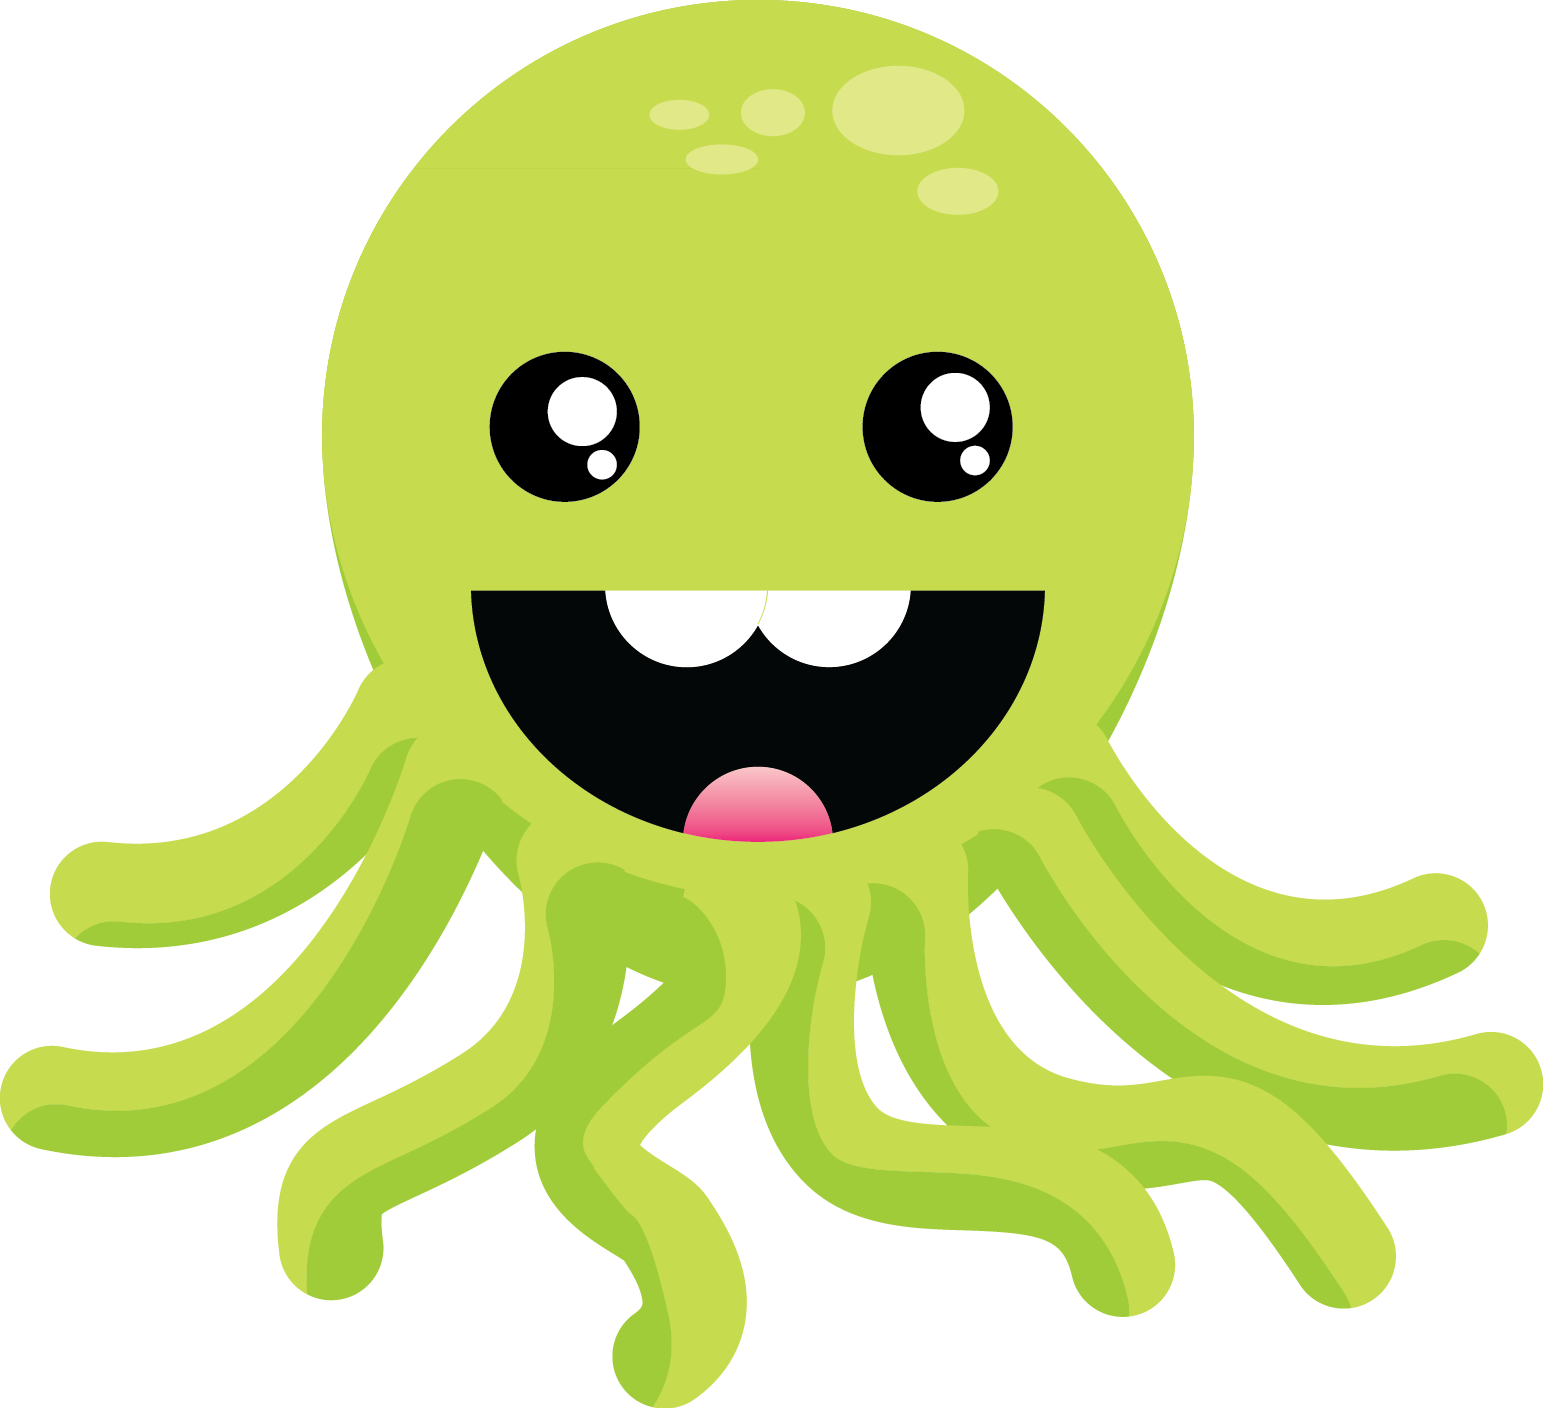 Jokingart com green. Clipart anchor octopus